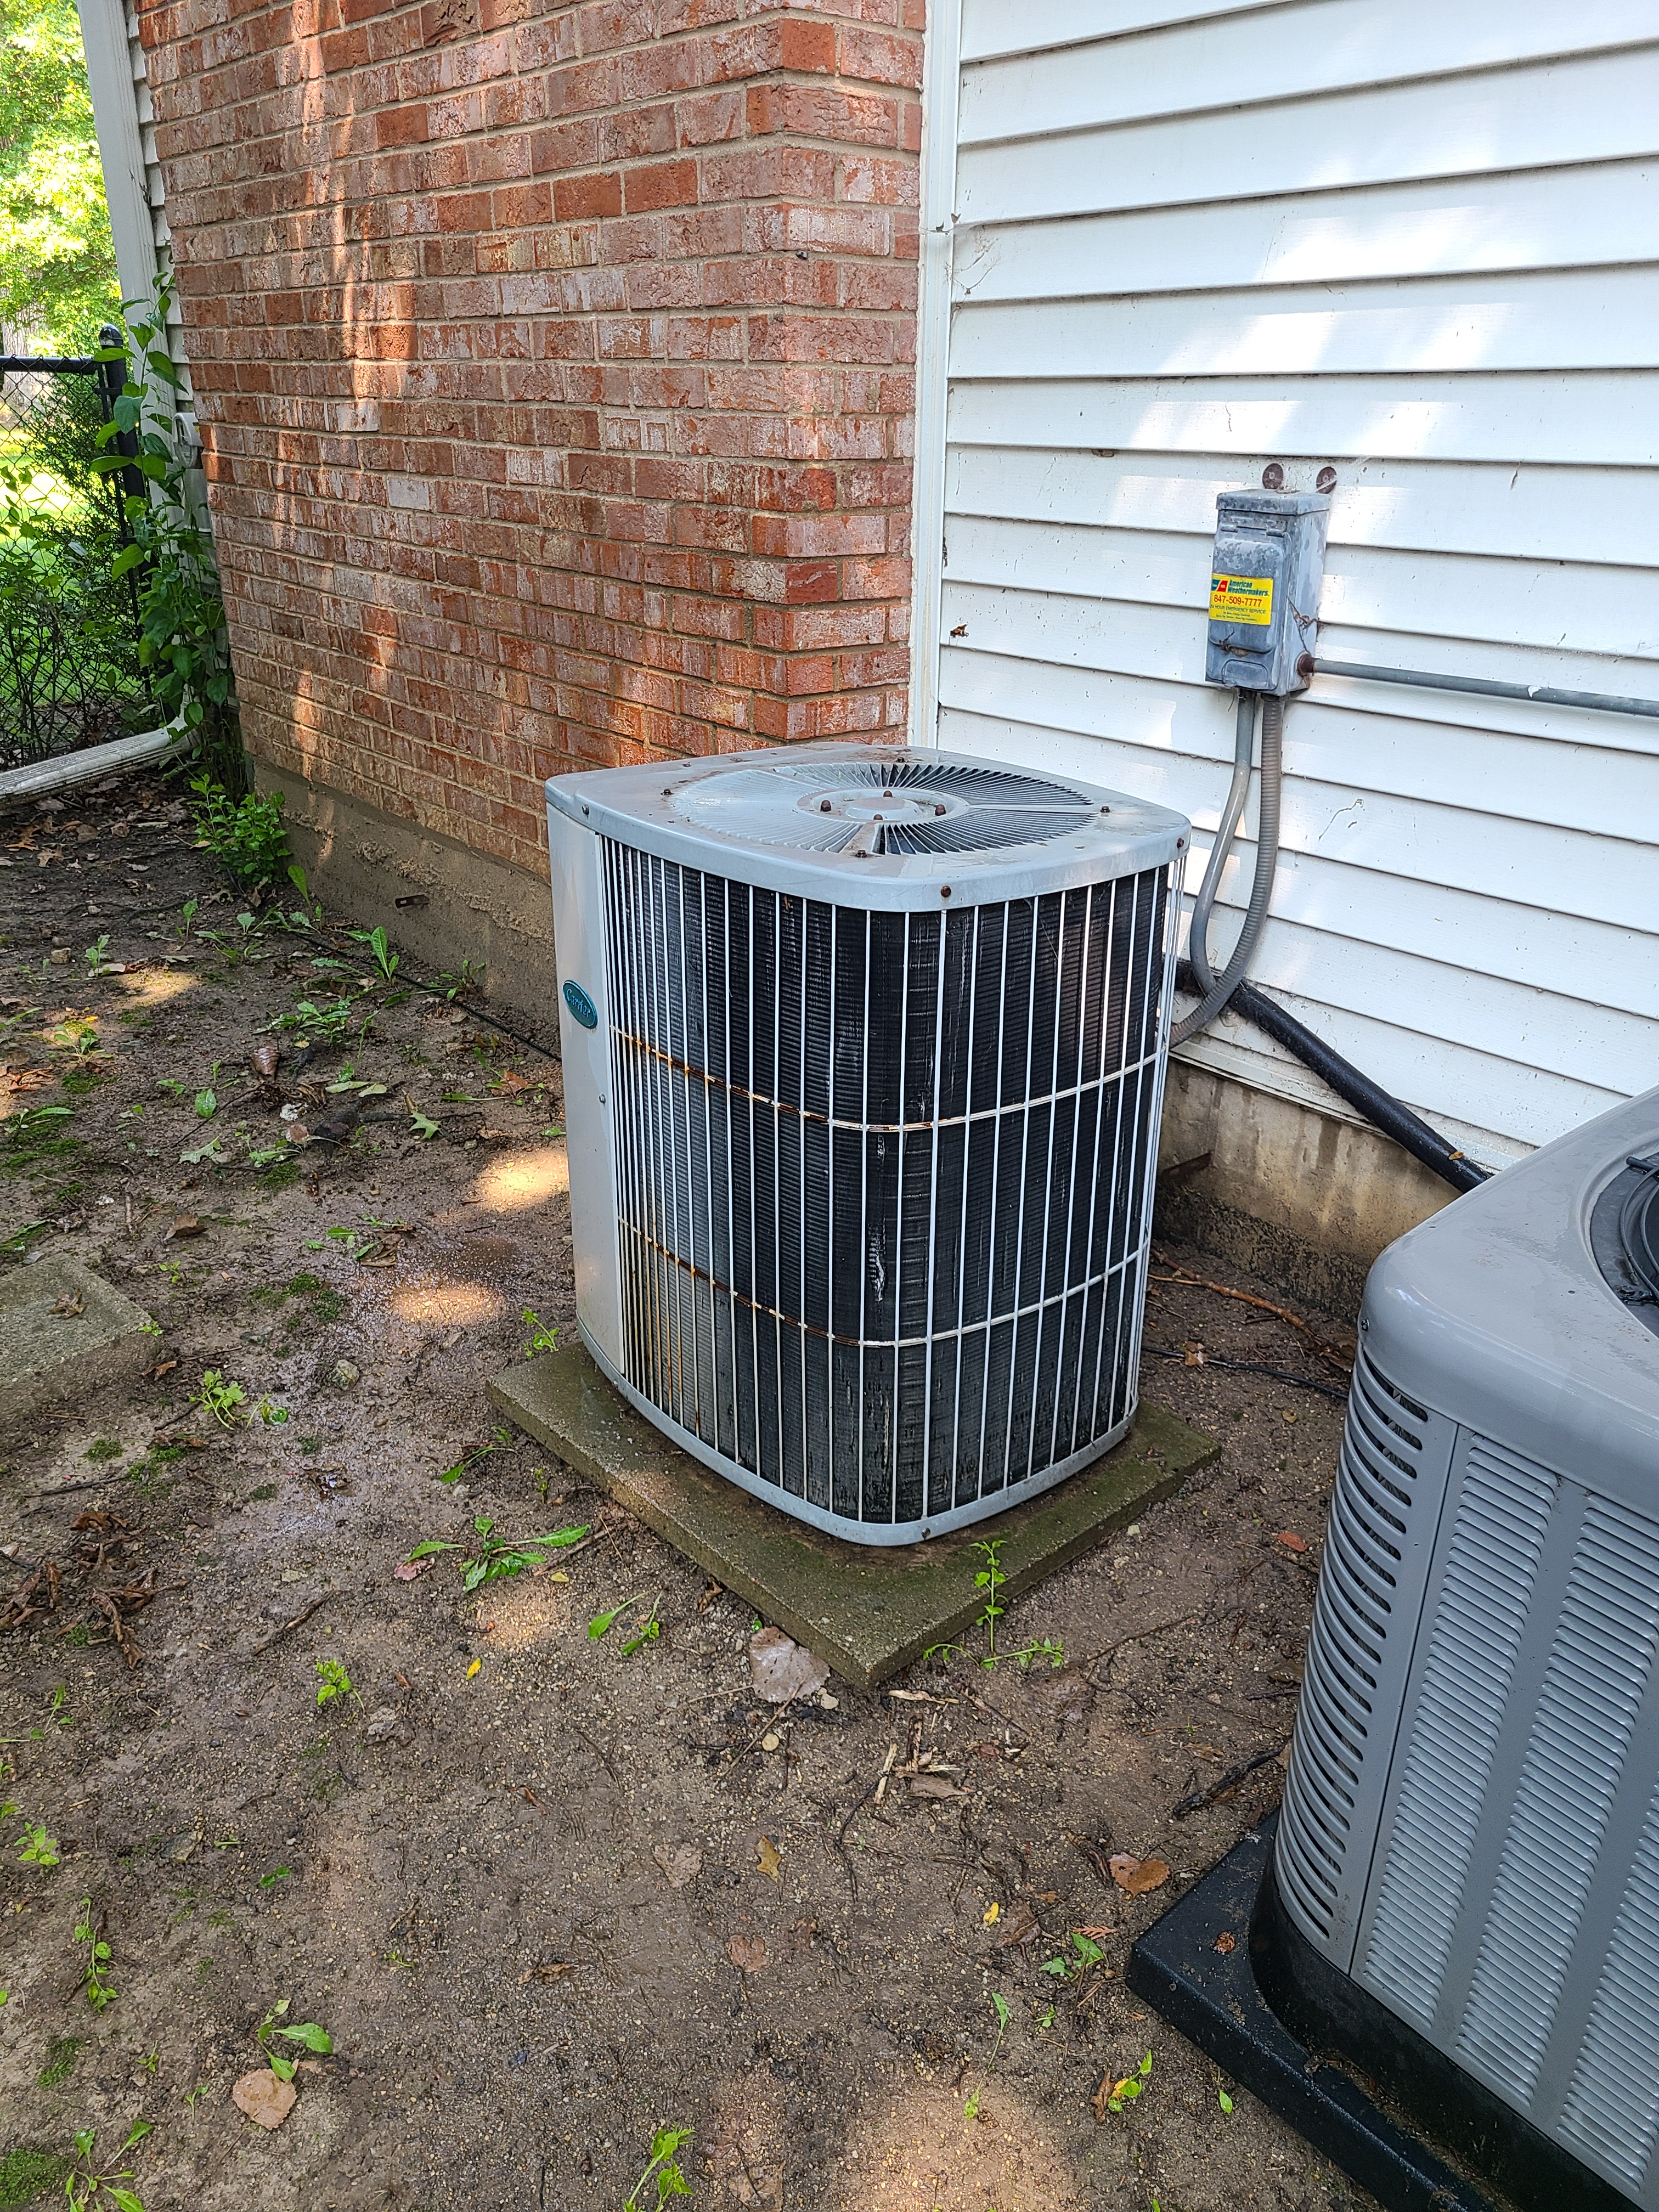 Carrier ac summer tune up and maintenance. System cleaned and checked and ready for summer.